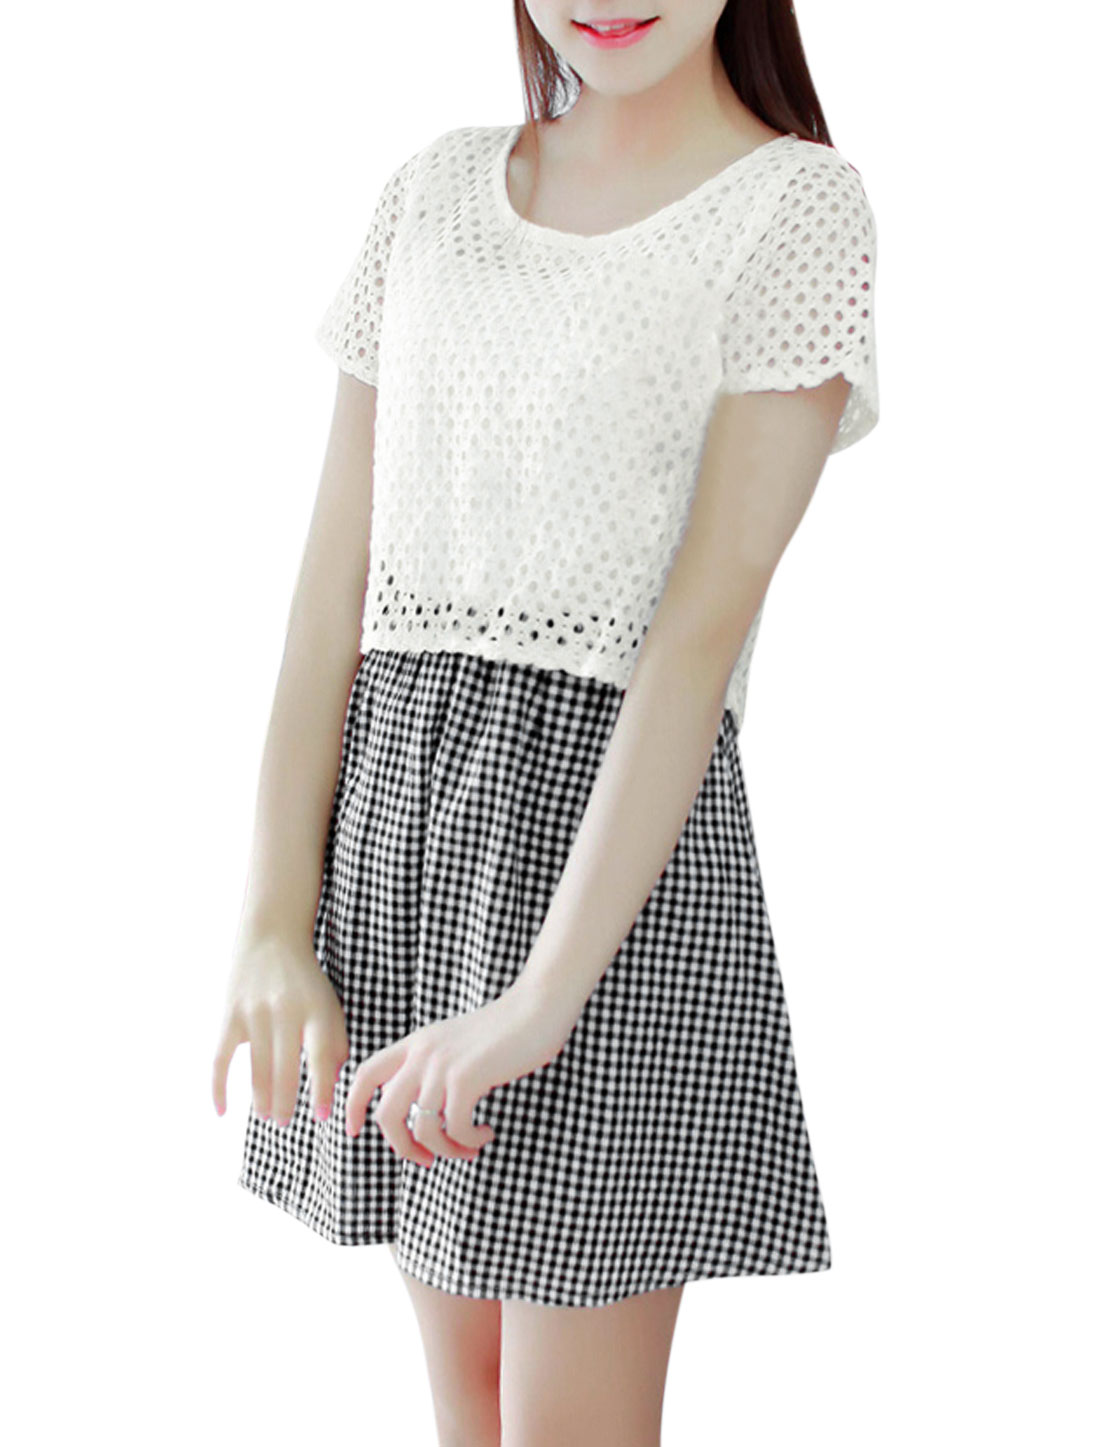 Woman Plaids Hollow Out Round Neck Layered Top A Line Dress Black White S